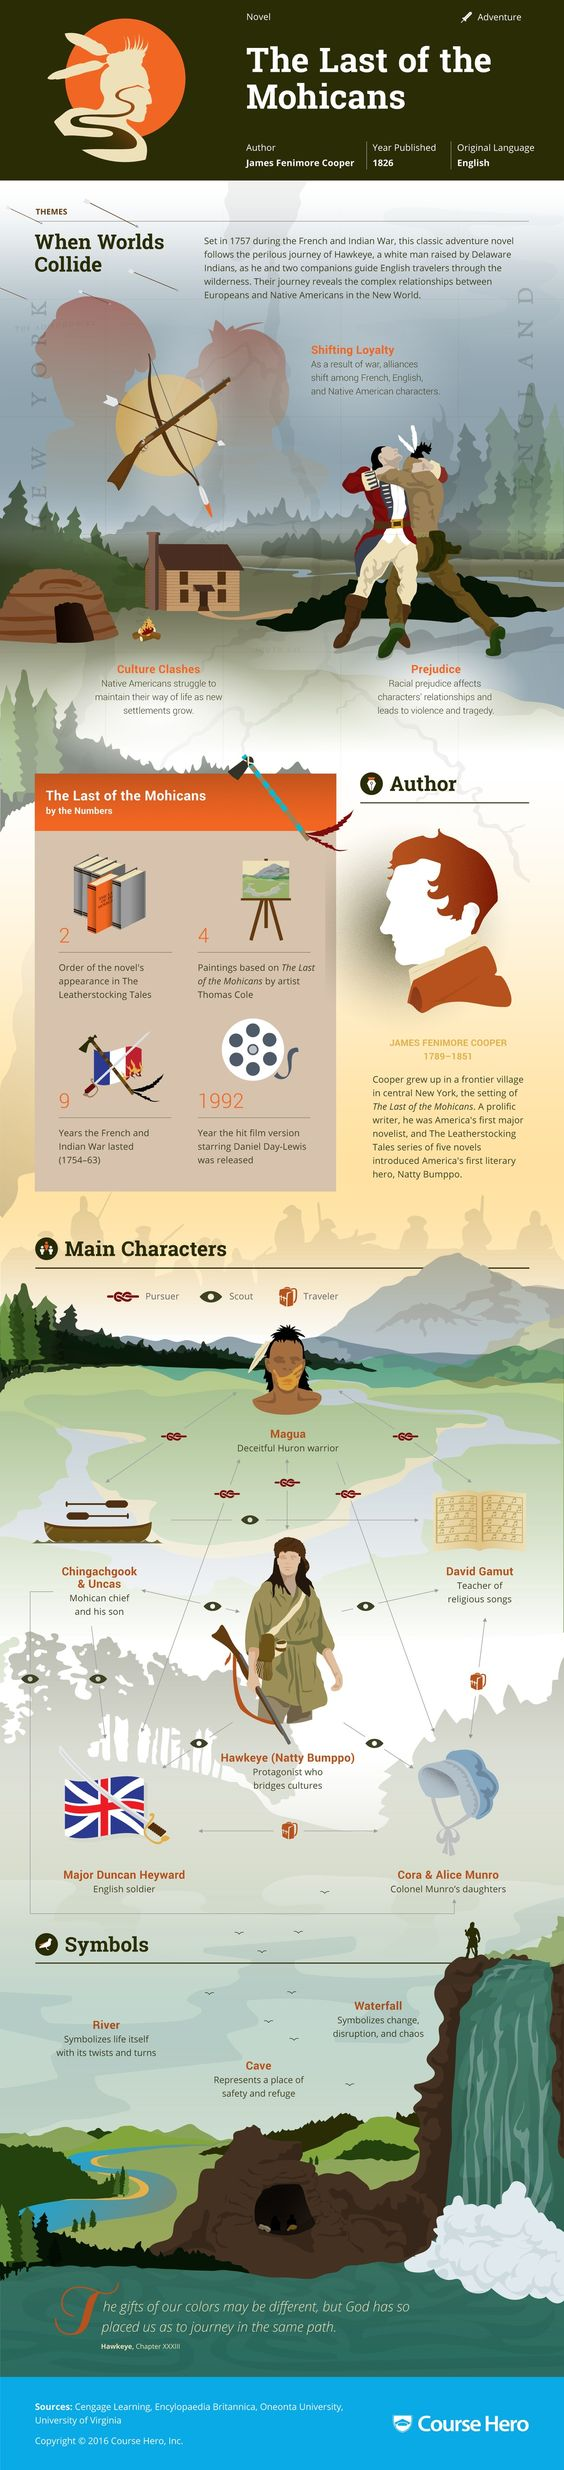 the last of the mohicans infographic course hero literature study guide for james fenimore cooper s the last of the mohicans including chapter summary character analysis and more learn all about the last of the